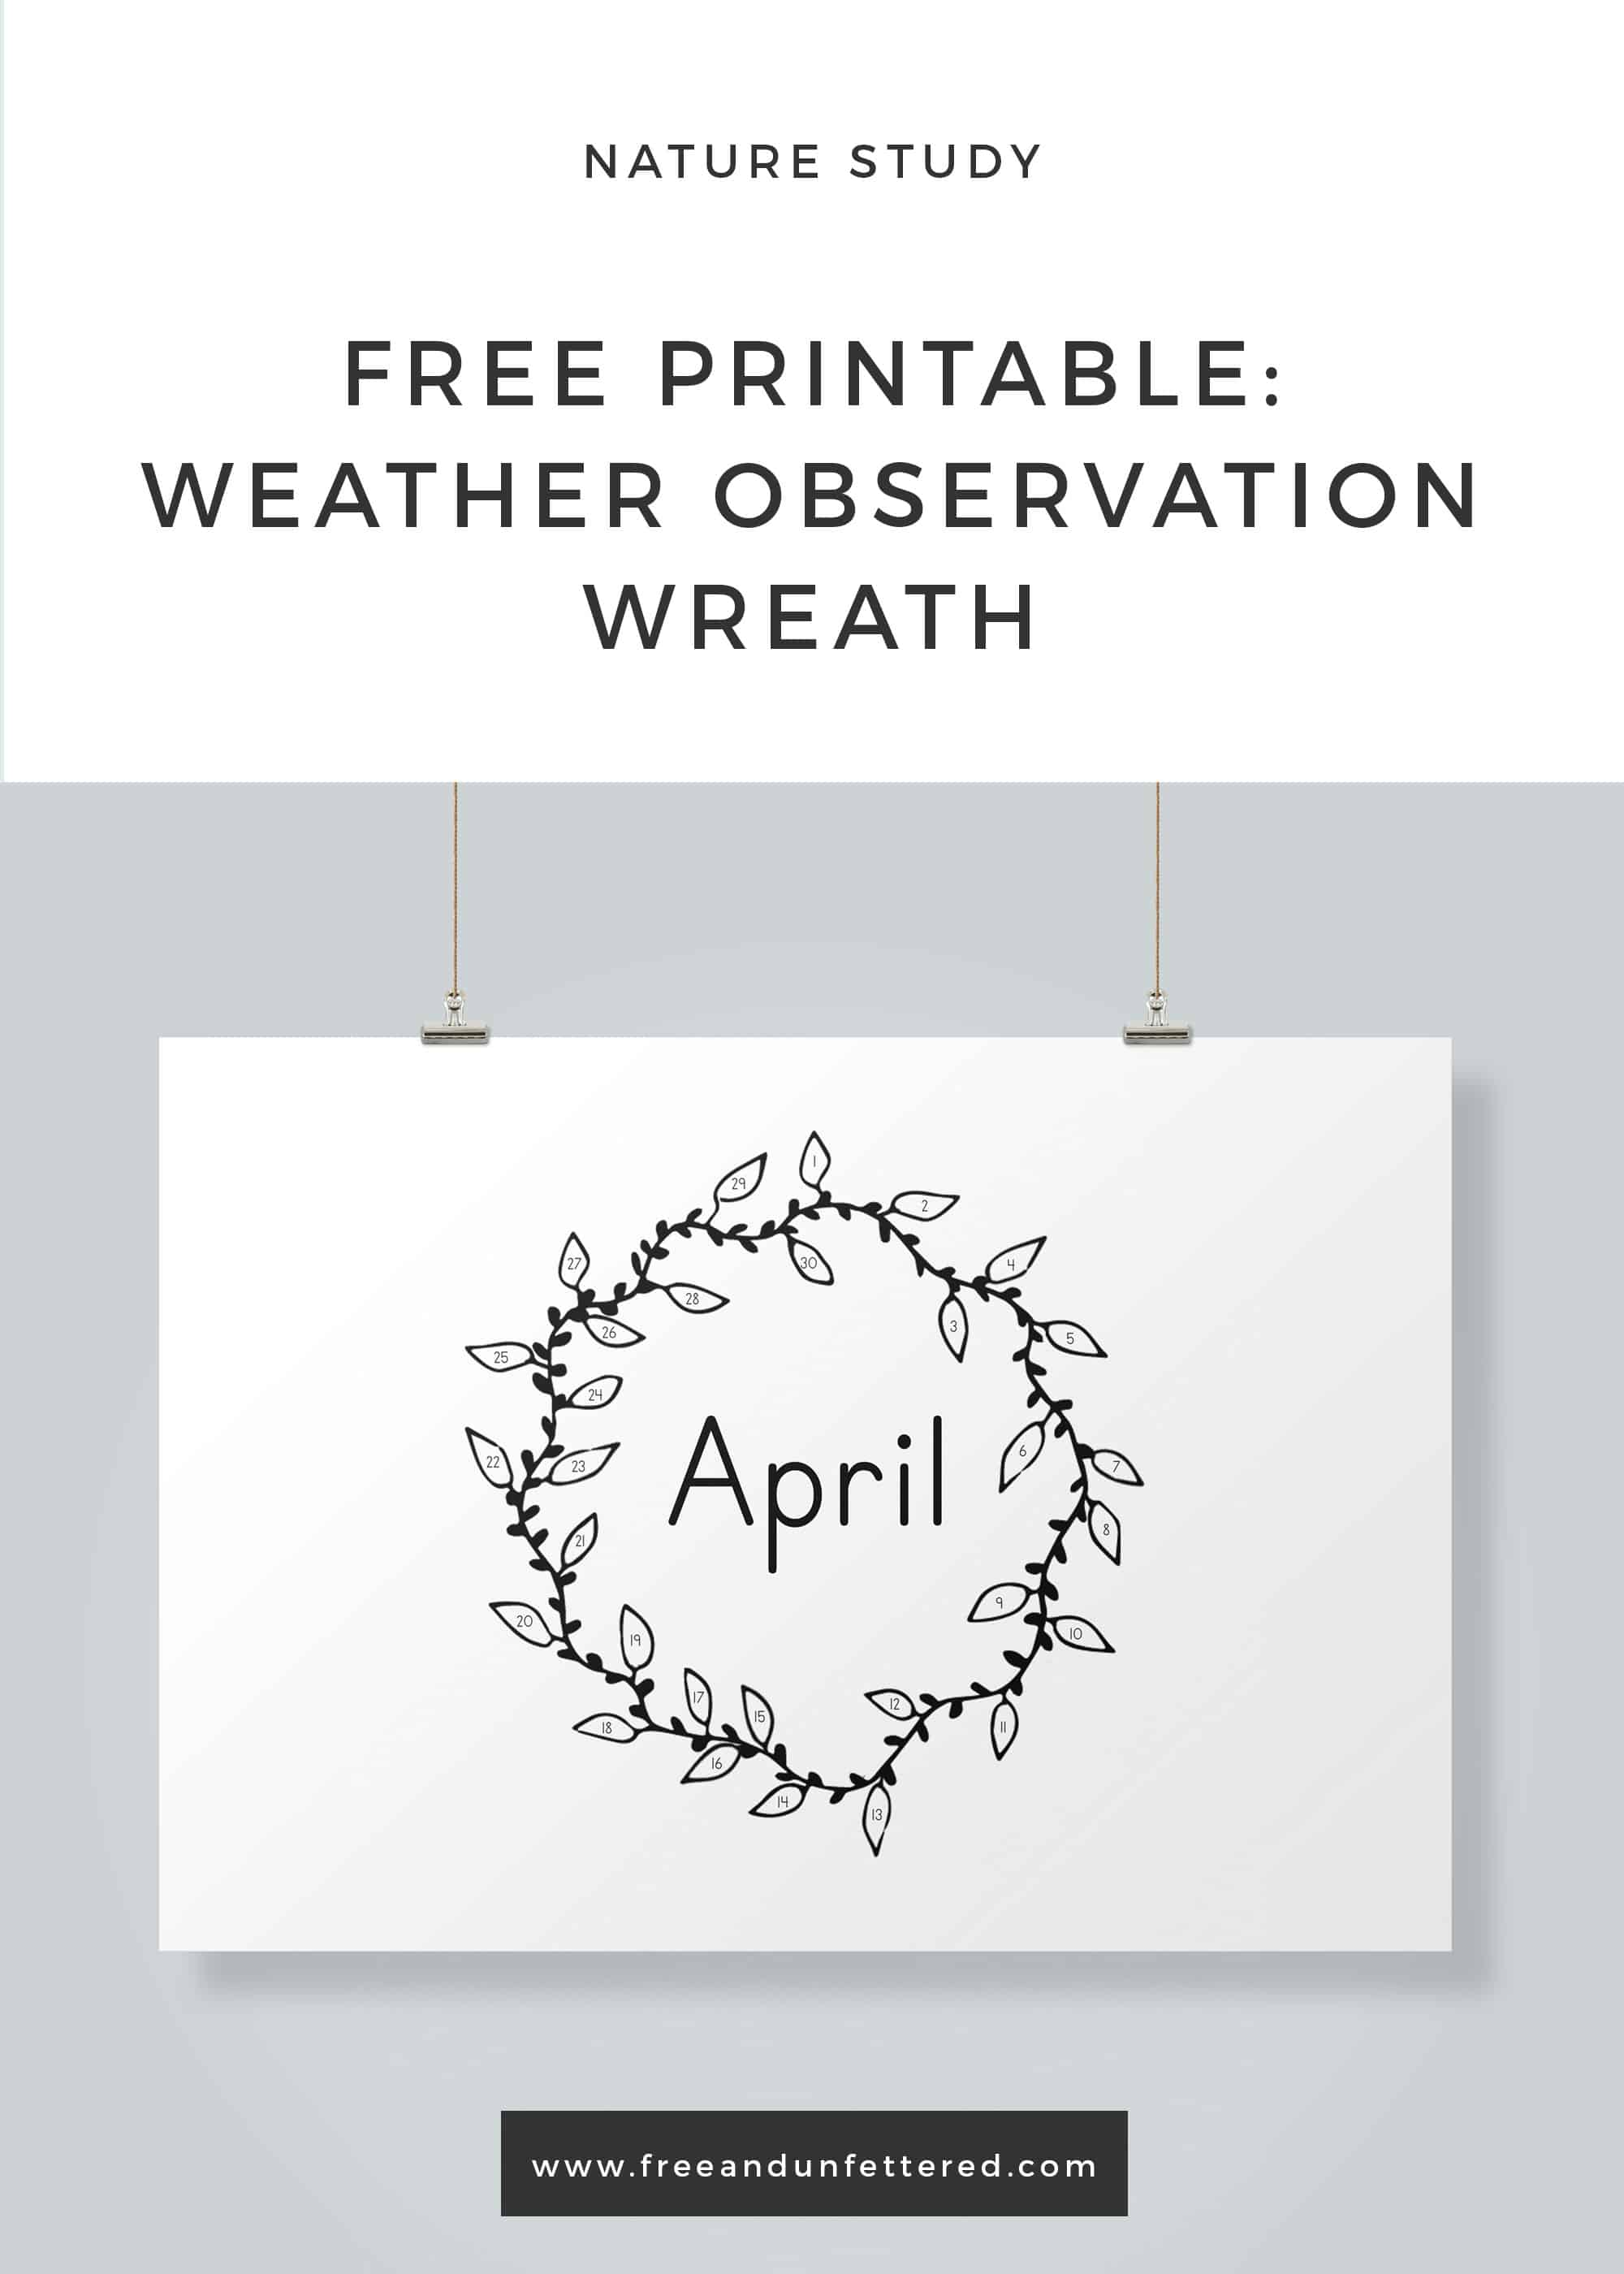 photograph about Printable Weather referred to as Cost-free Printable: Climate Observation Wreath